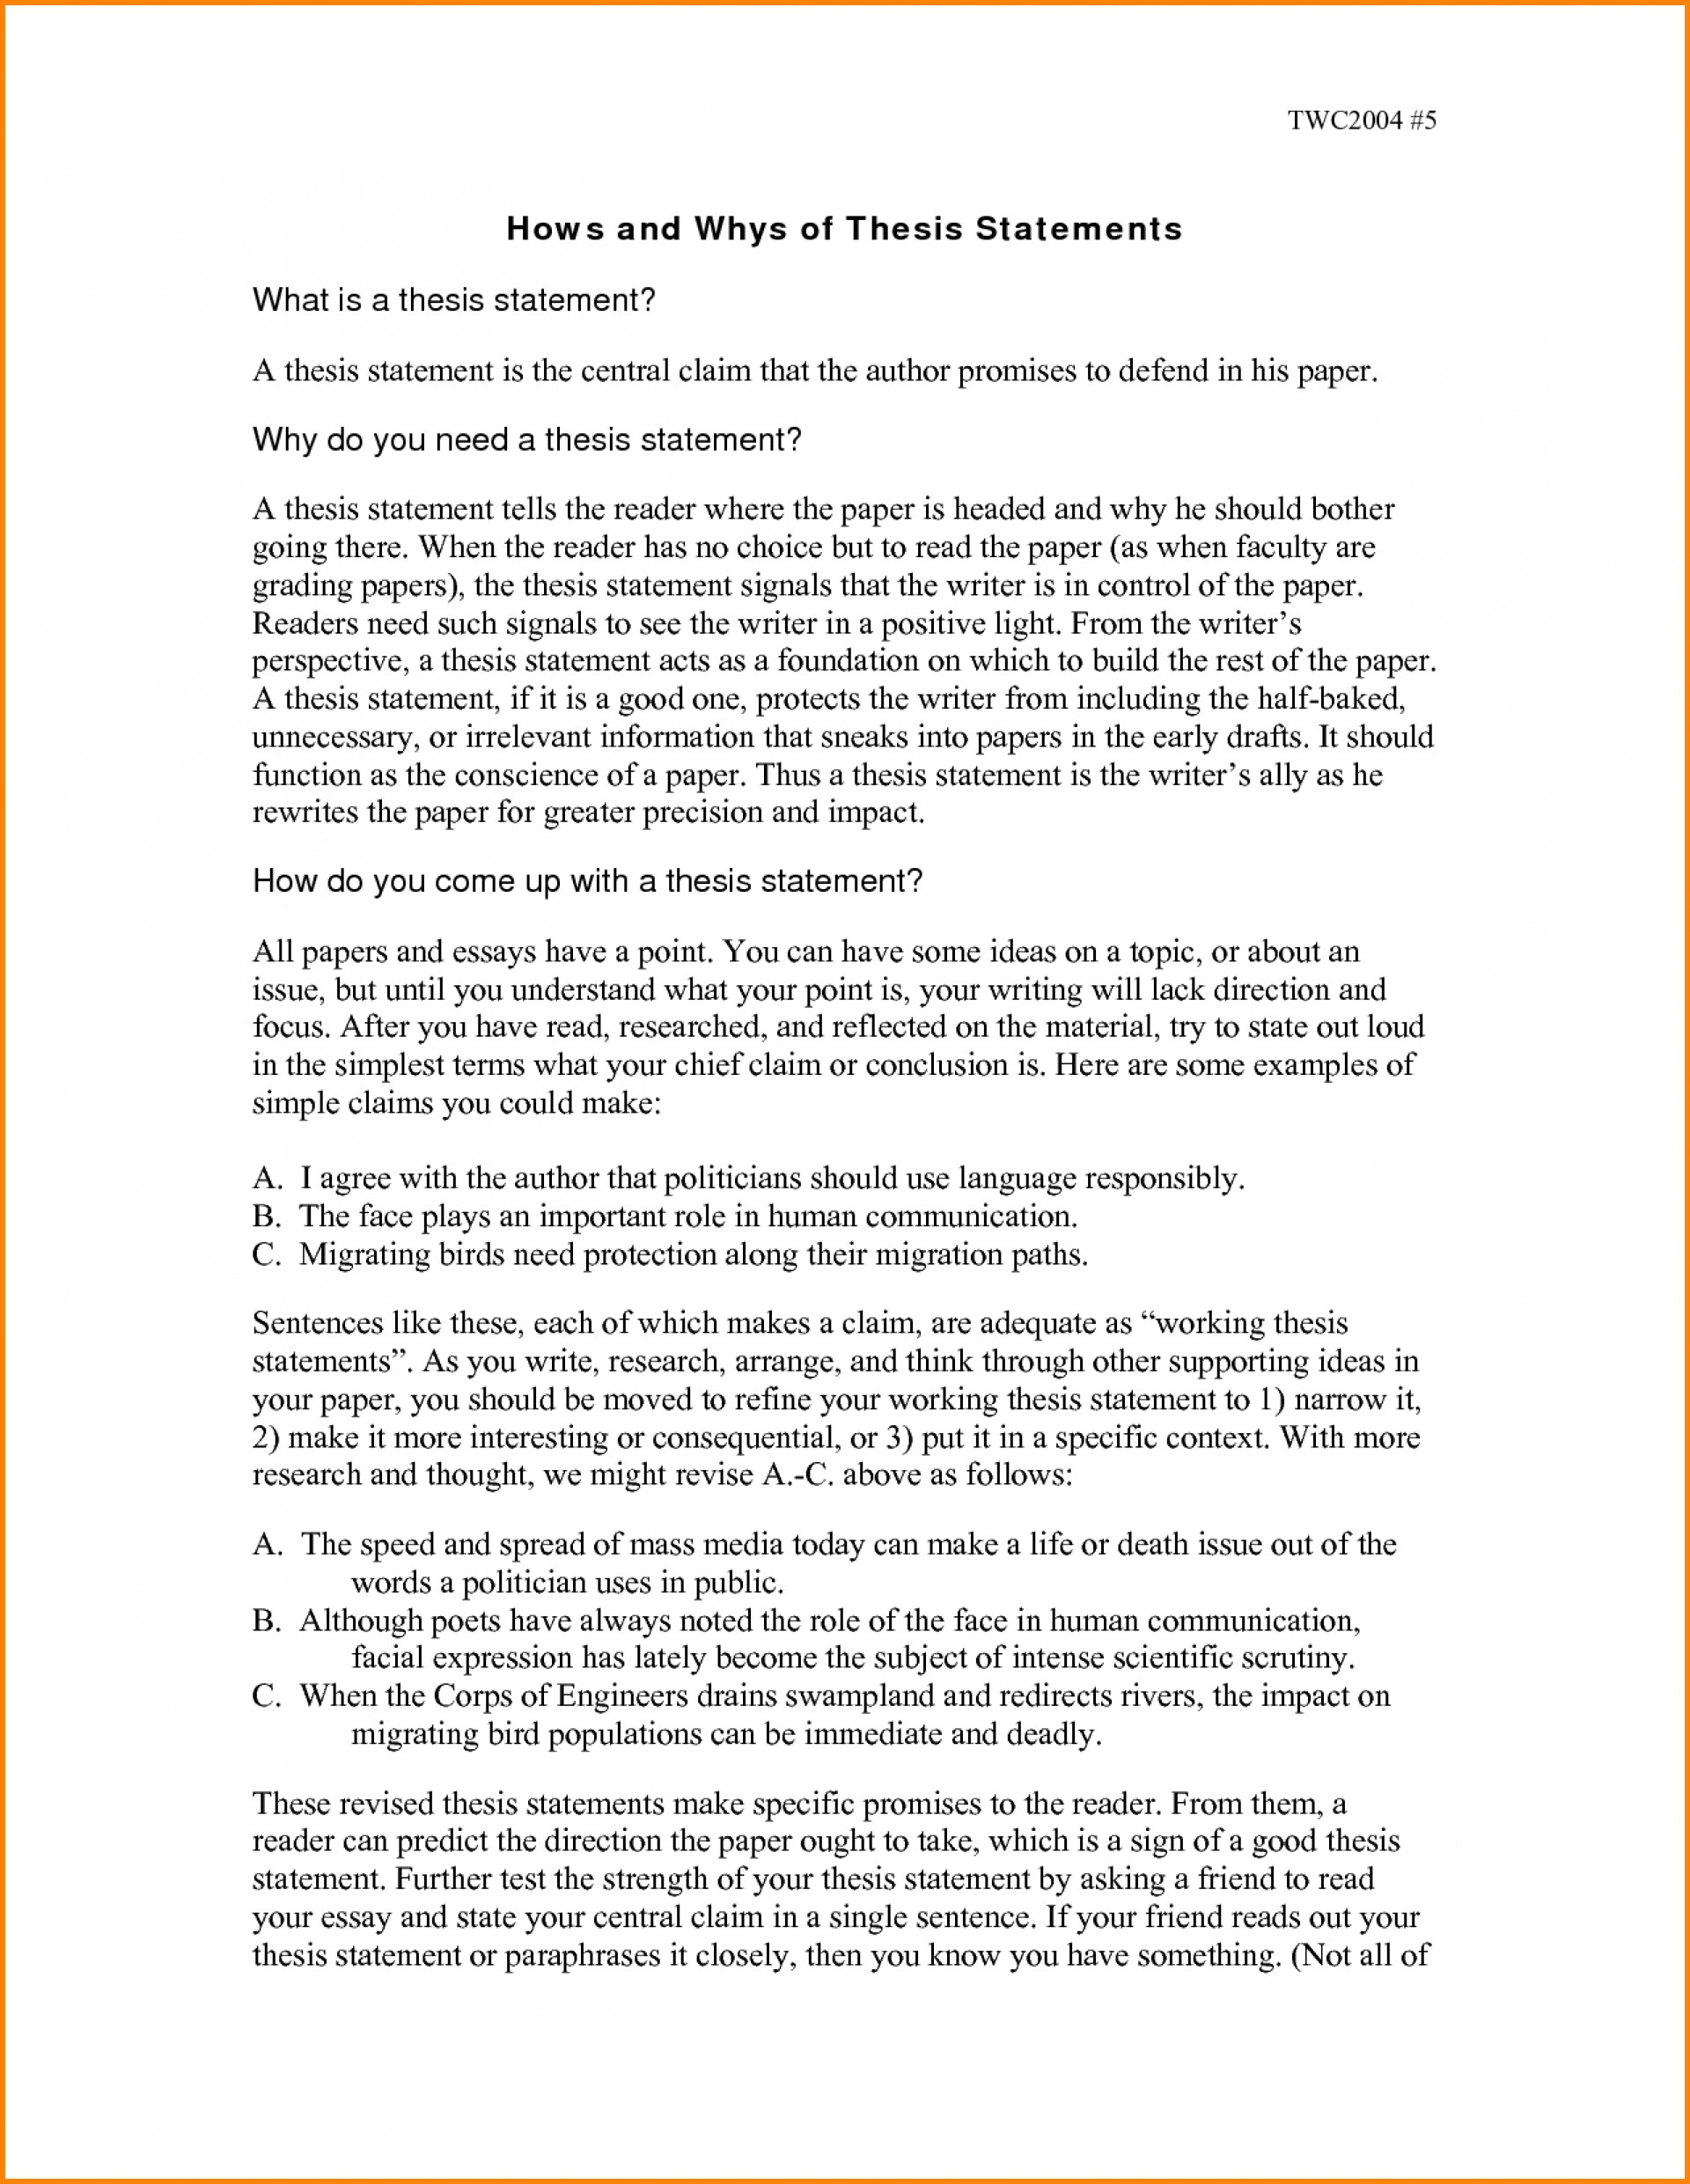 020 Thesis Statements For Essays How To Write An Essay Frightening A Statement Do You Informative Step By Argumentative 1920